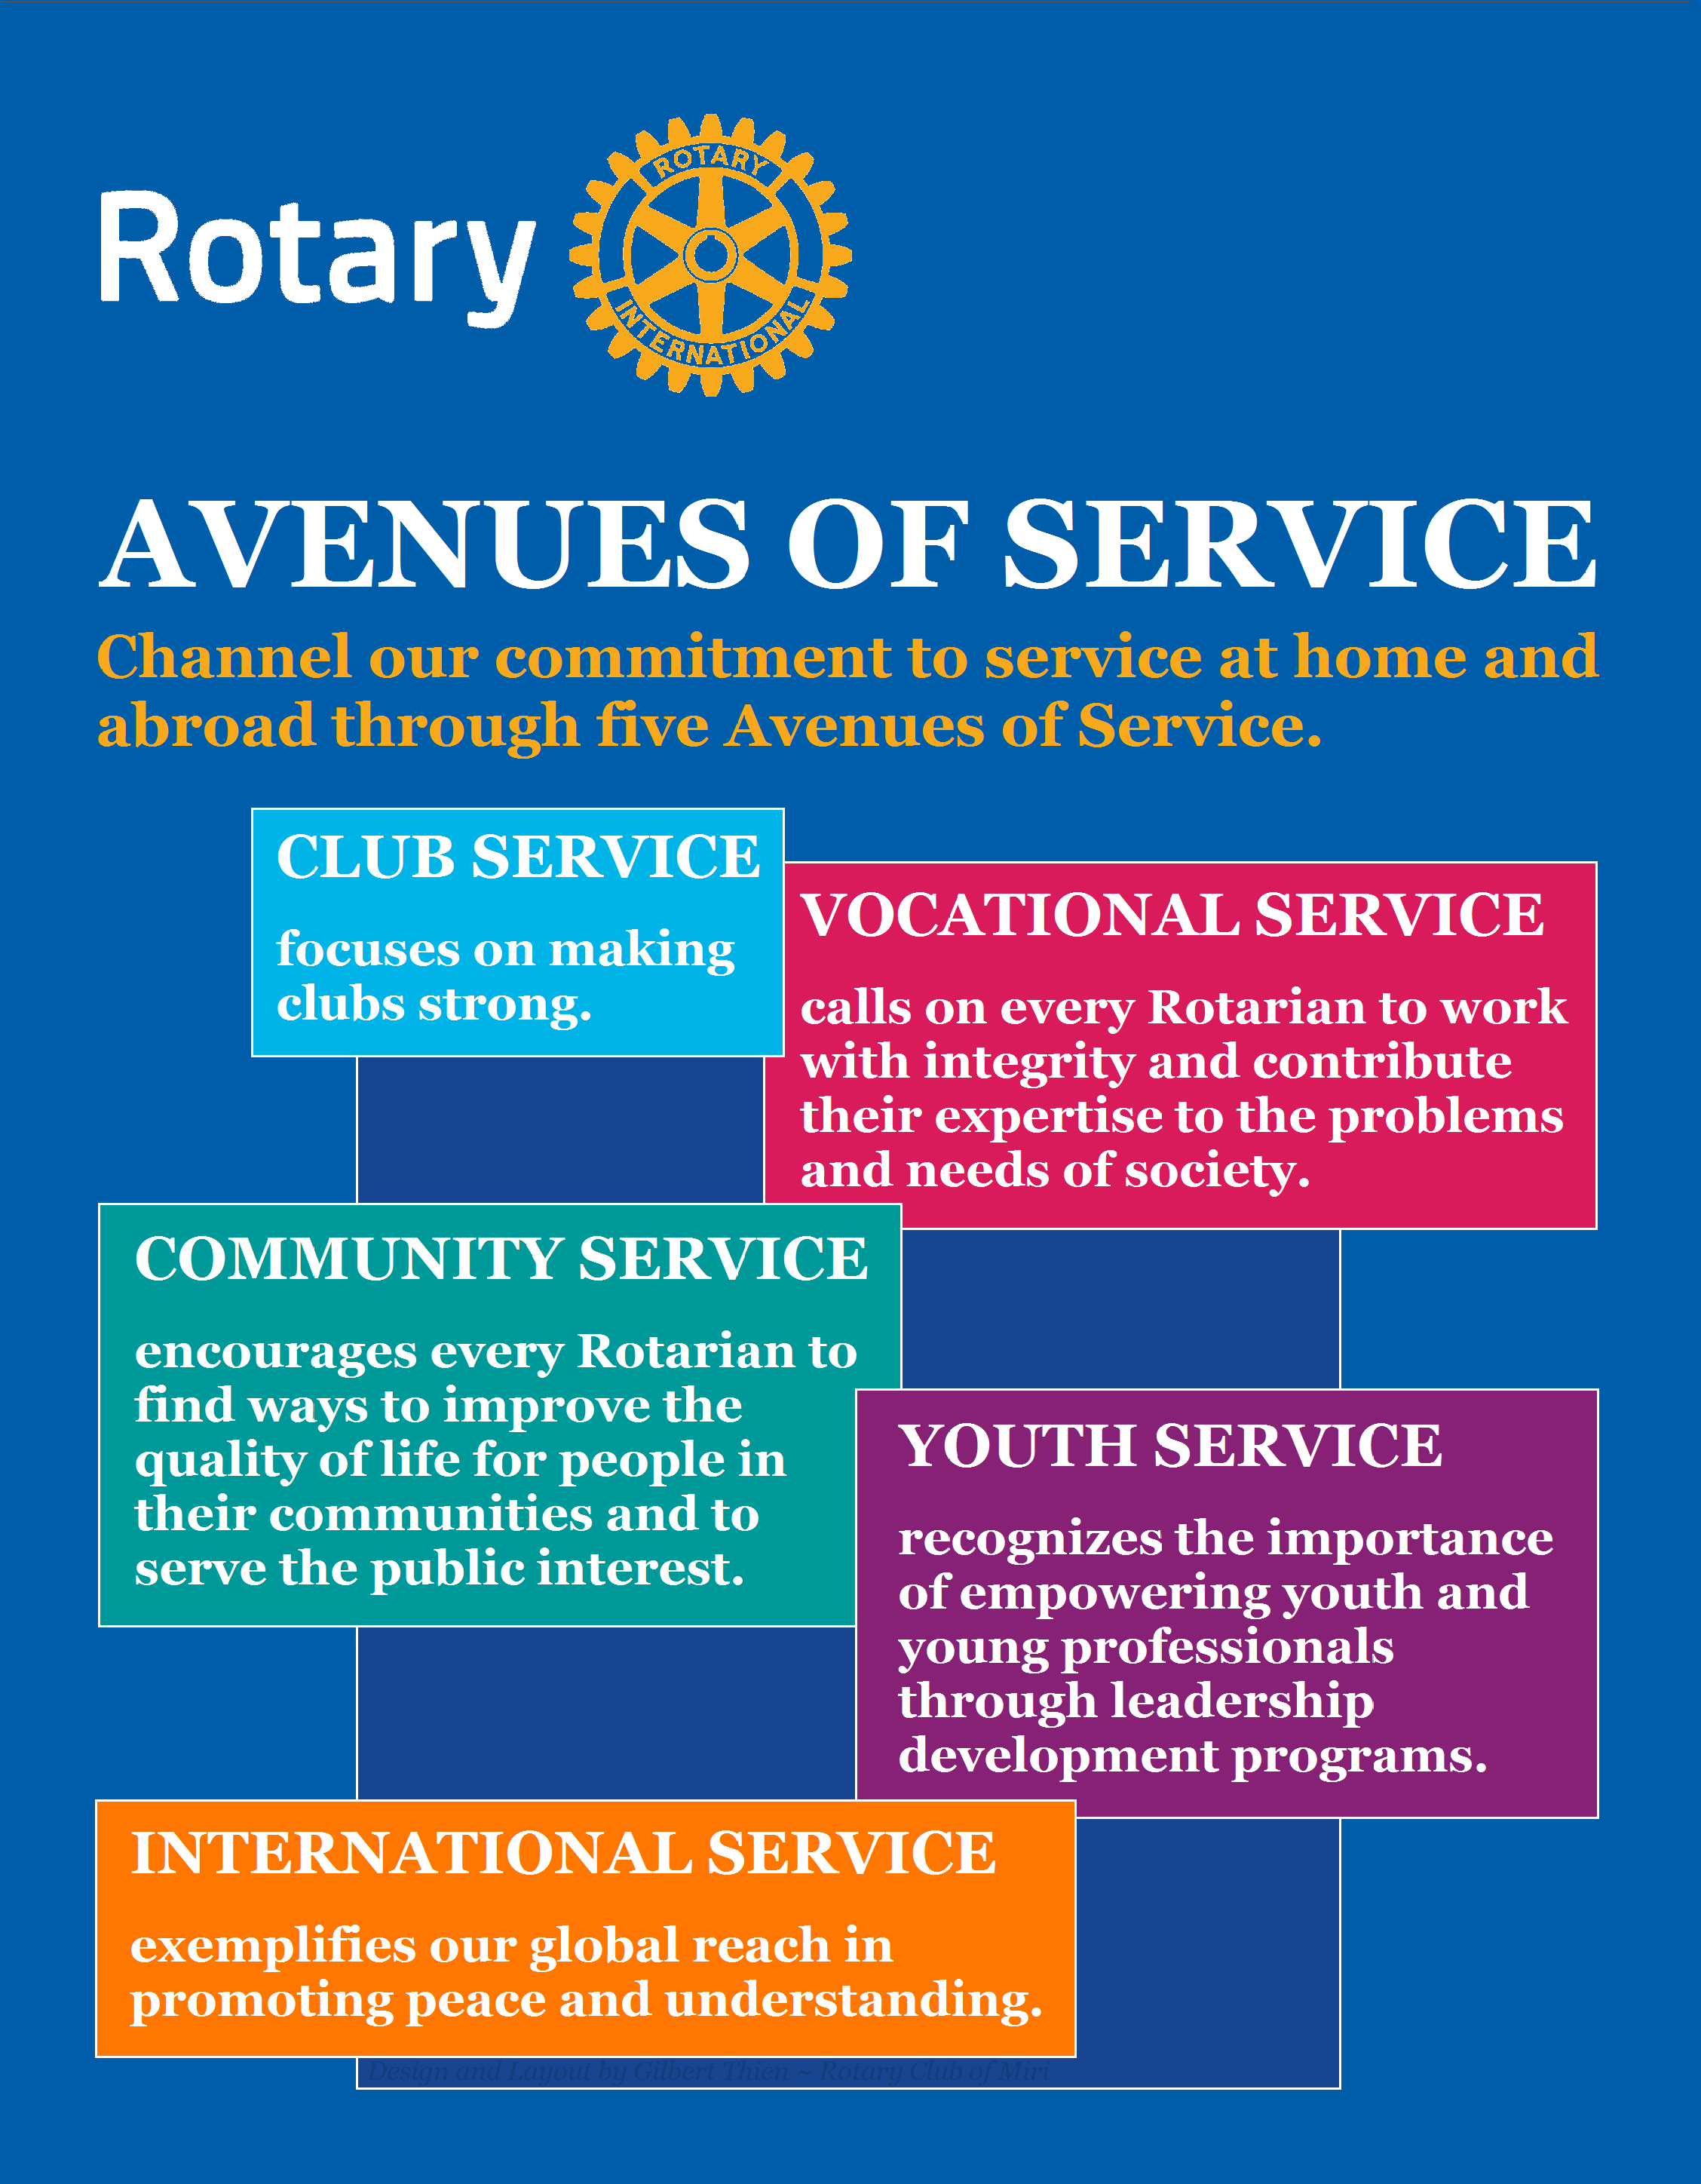 Rotary's 5 Avenues of Service